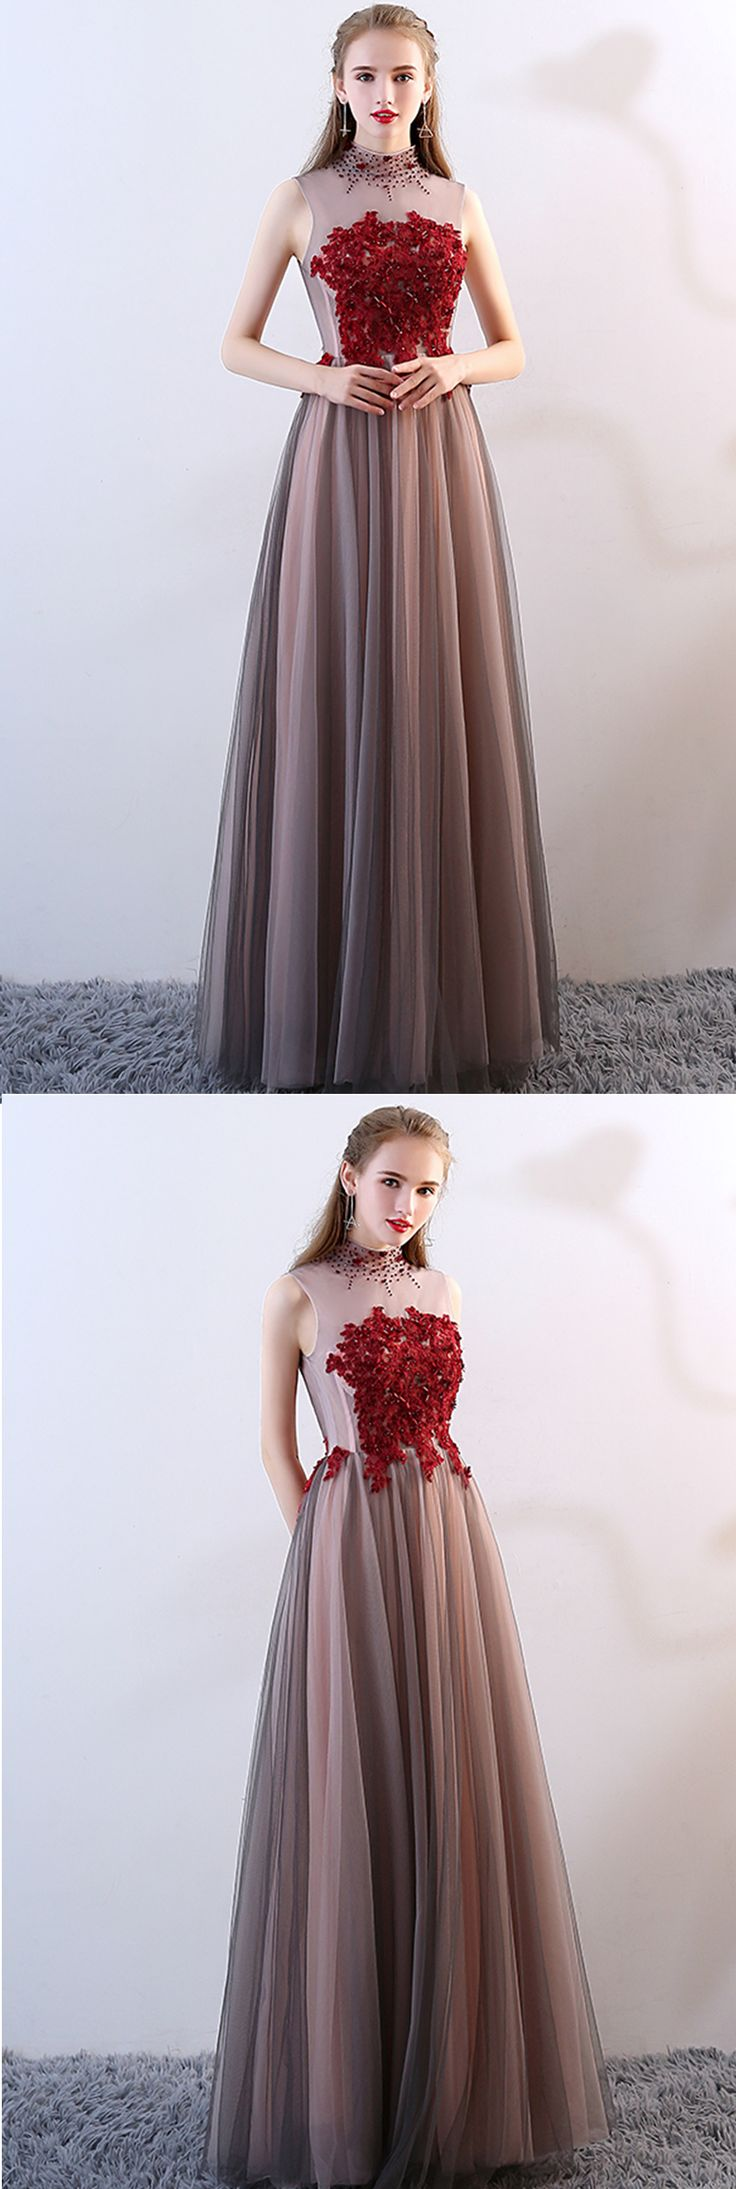 Spring high neck beaded long sweet 16 prom dresses with appliques